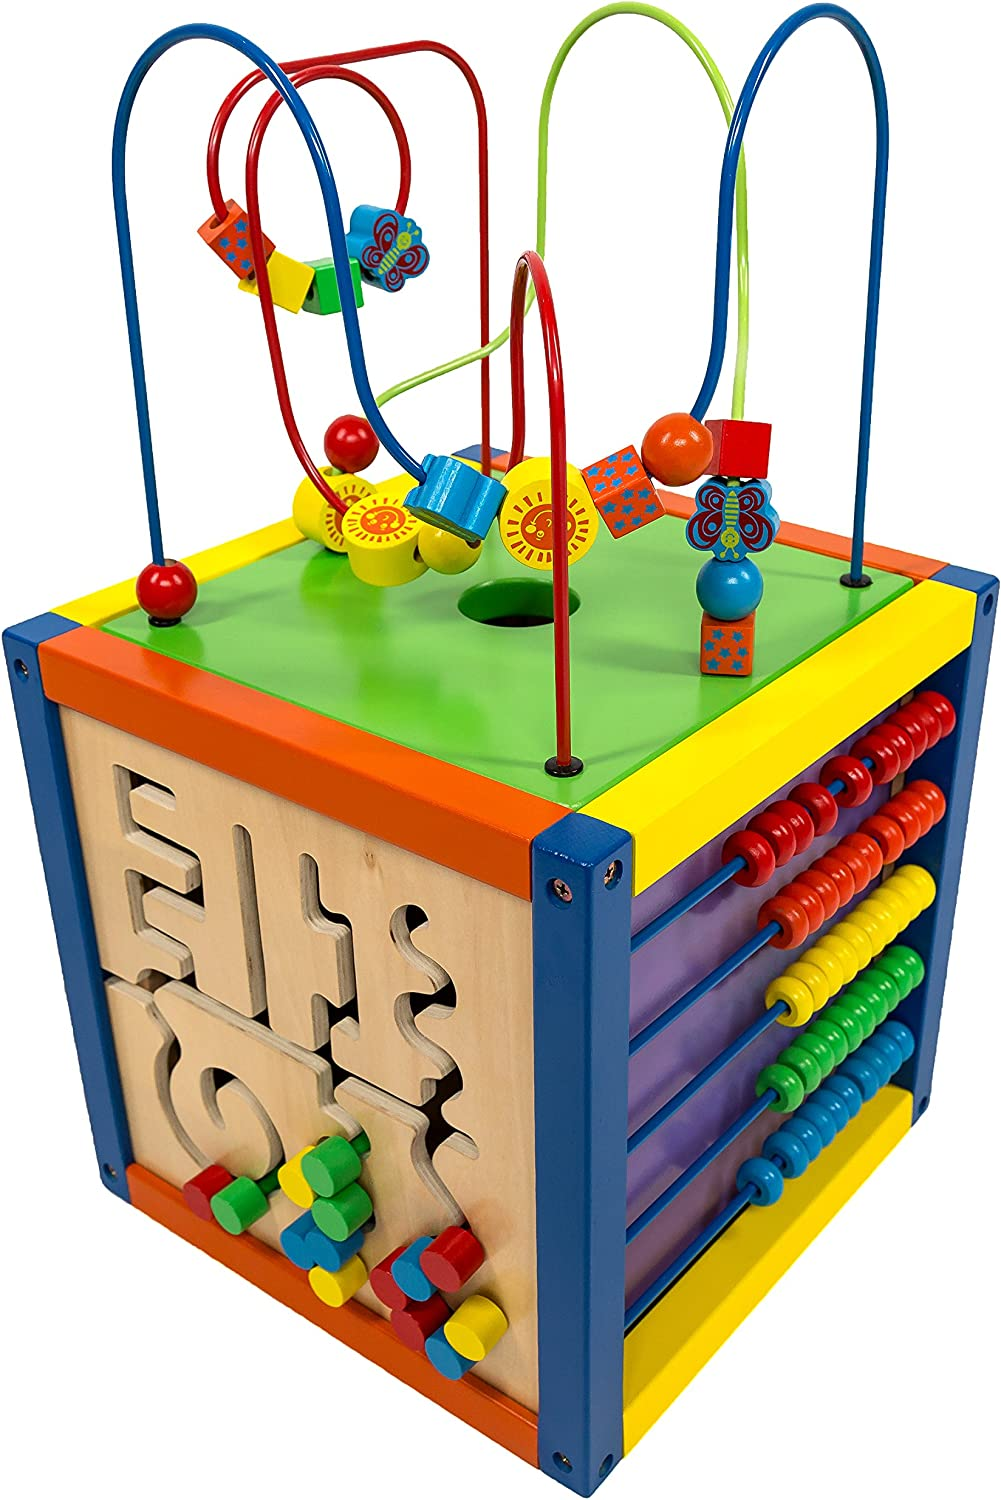 Top 10 Best Activity Cubes (2020 Reviews & Buying Guide) 2